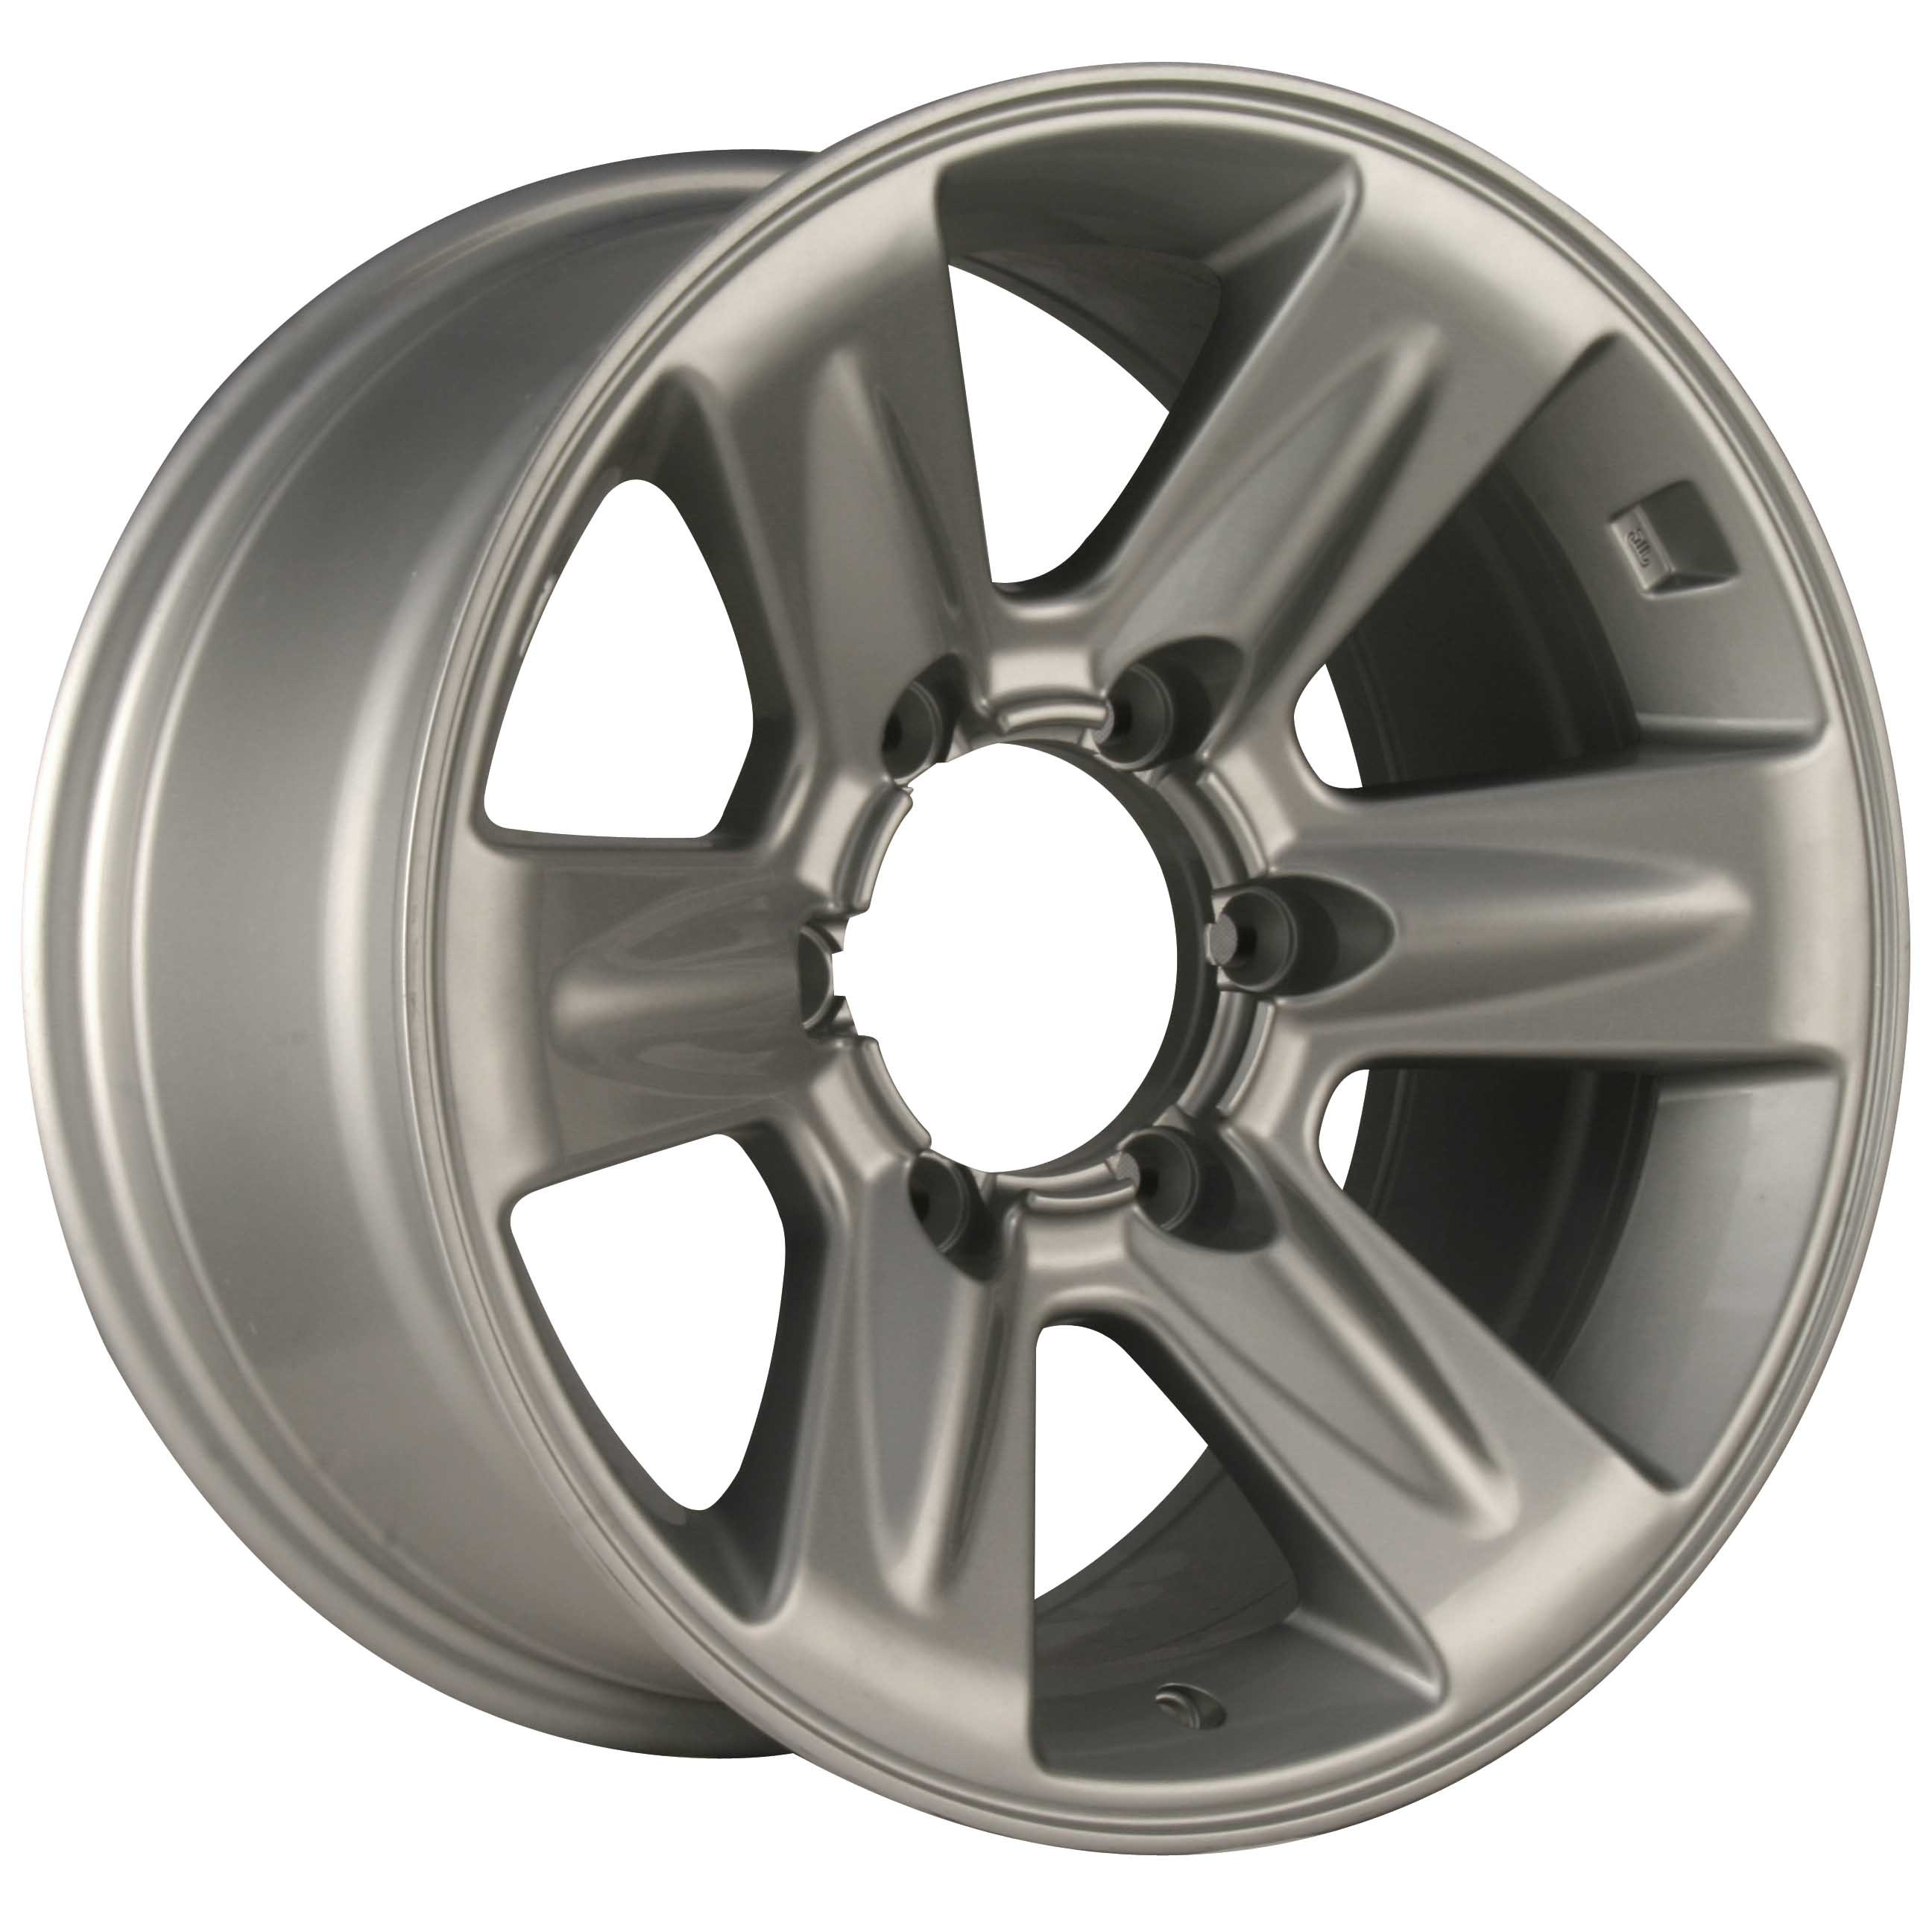 16inch Alloy Wheel Replica Wheel for Nissan′s